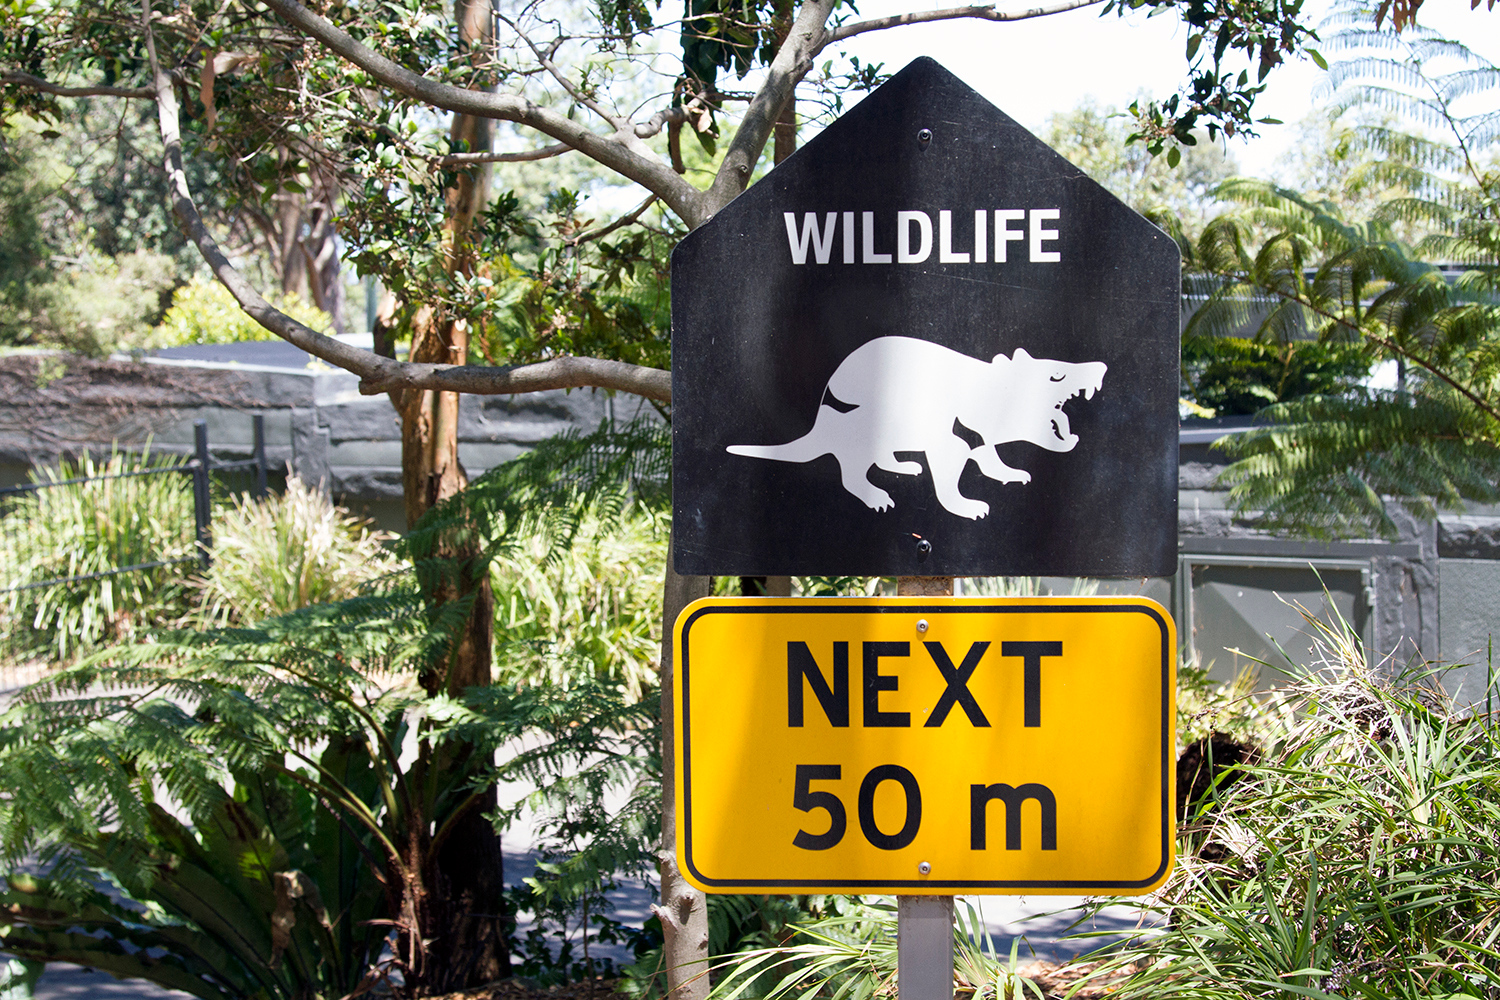 wildlife ahead